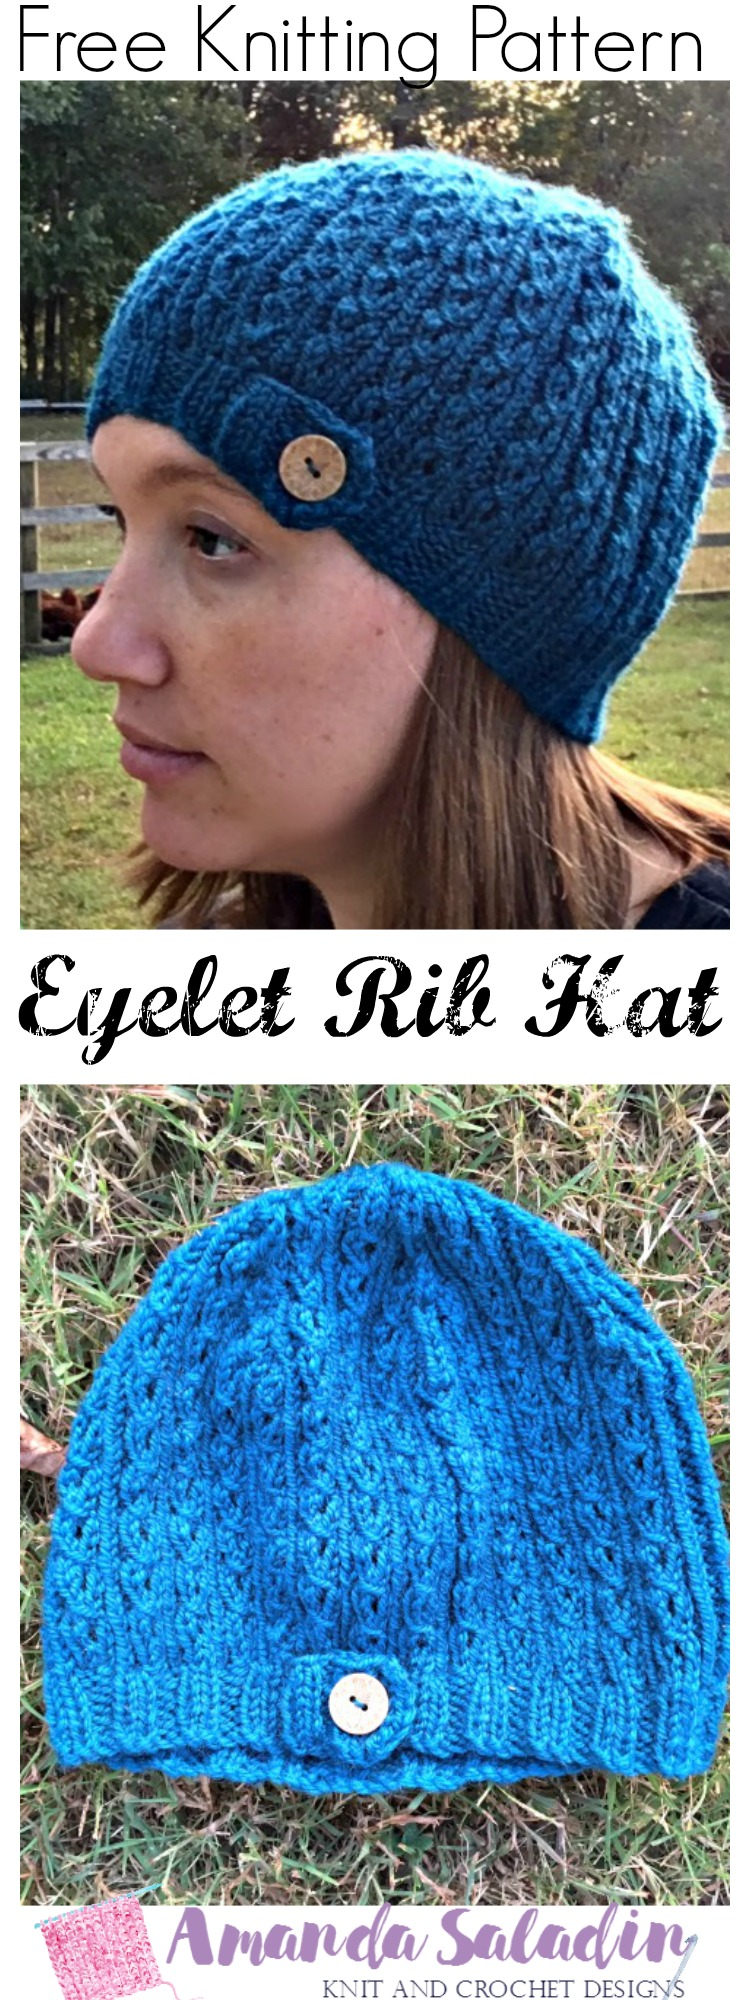 Free Knitting Pattern - Eyelet Rib Knit Hat